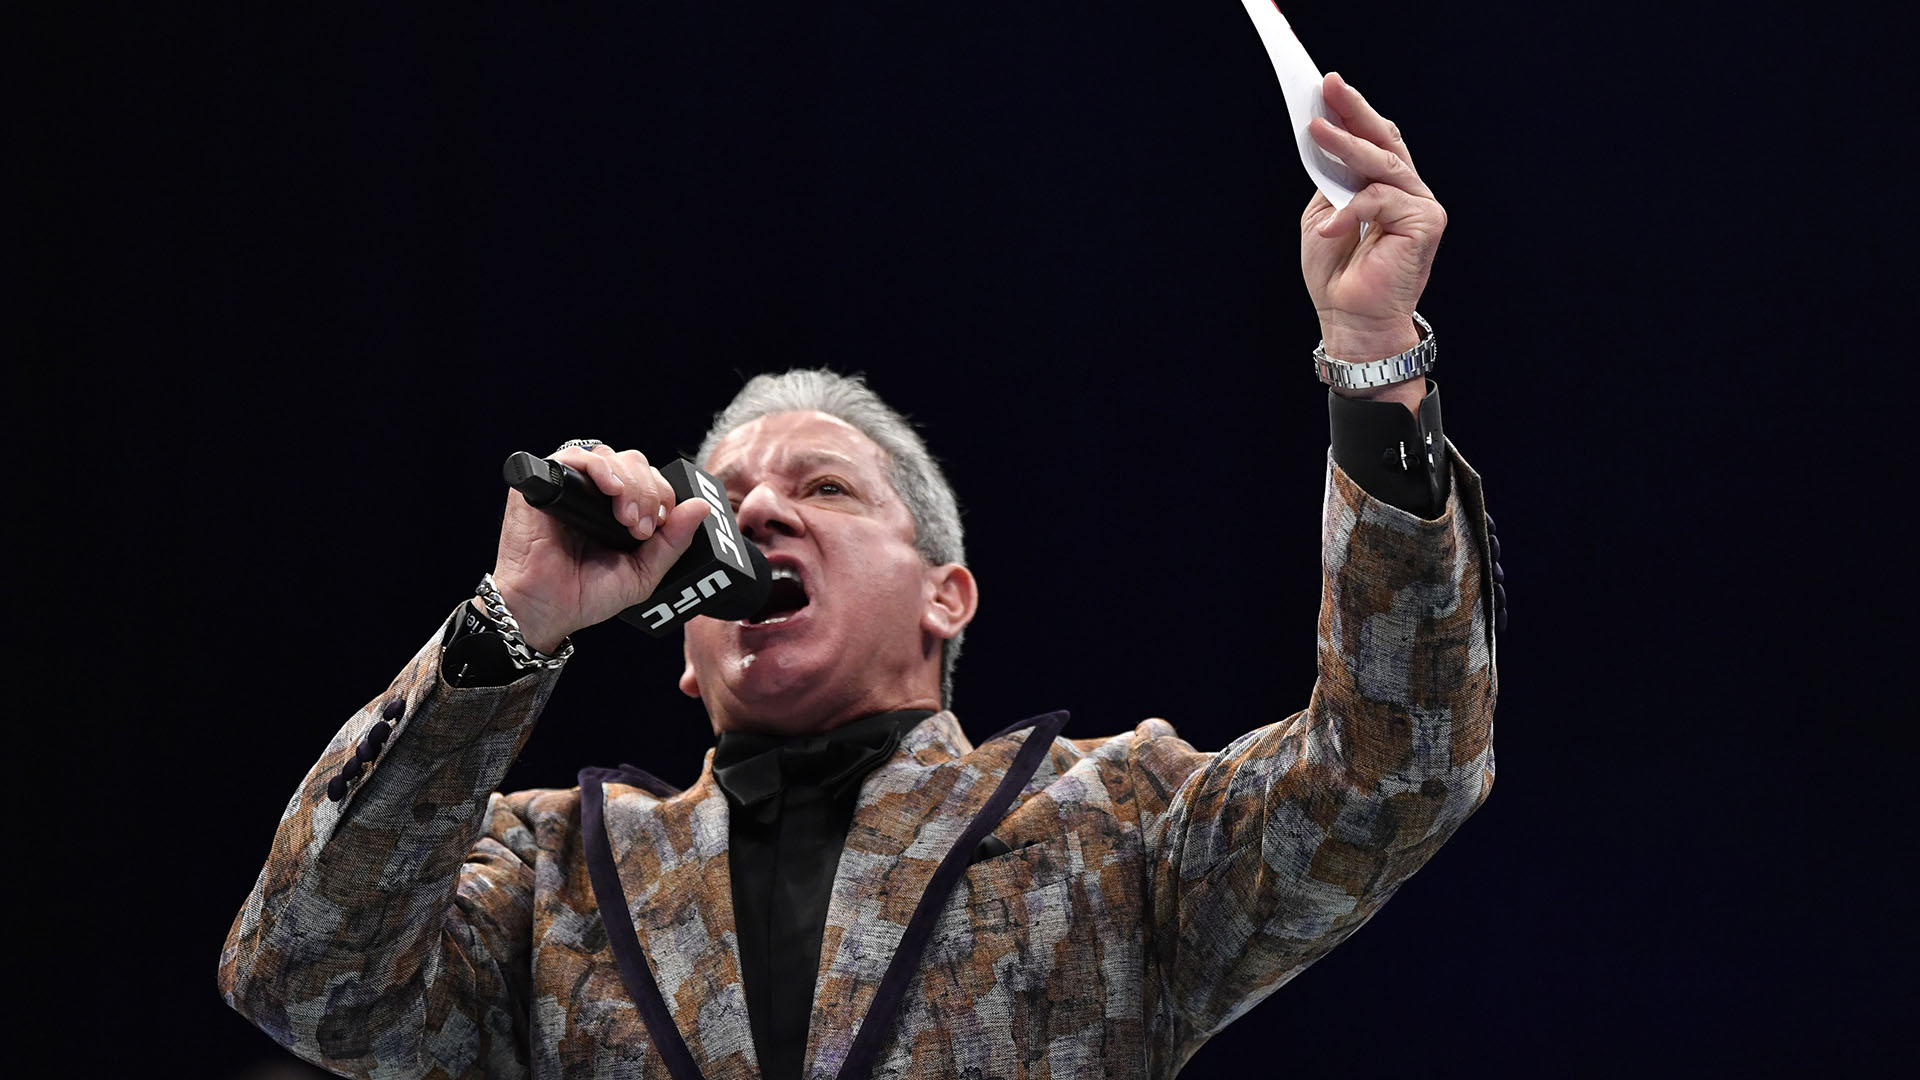 Octagon announcer Bruce Buffer introduces the main event during the UFC Fight Night event at Etihad Arena on UFC Fight Island on January 17, 2021 in Abu Dhabi, United Arab Emirates. (Photo by Jeff Bottari/Zuffa LLC)